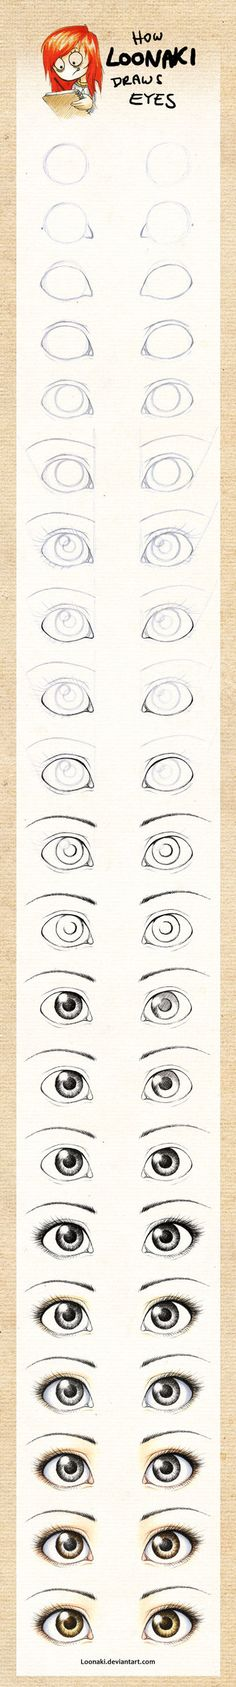 How Loonaki Draws Eyes by *Loonaki on deviantART